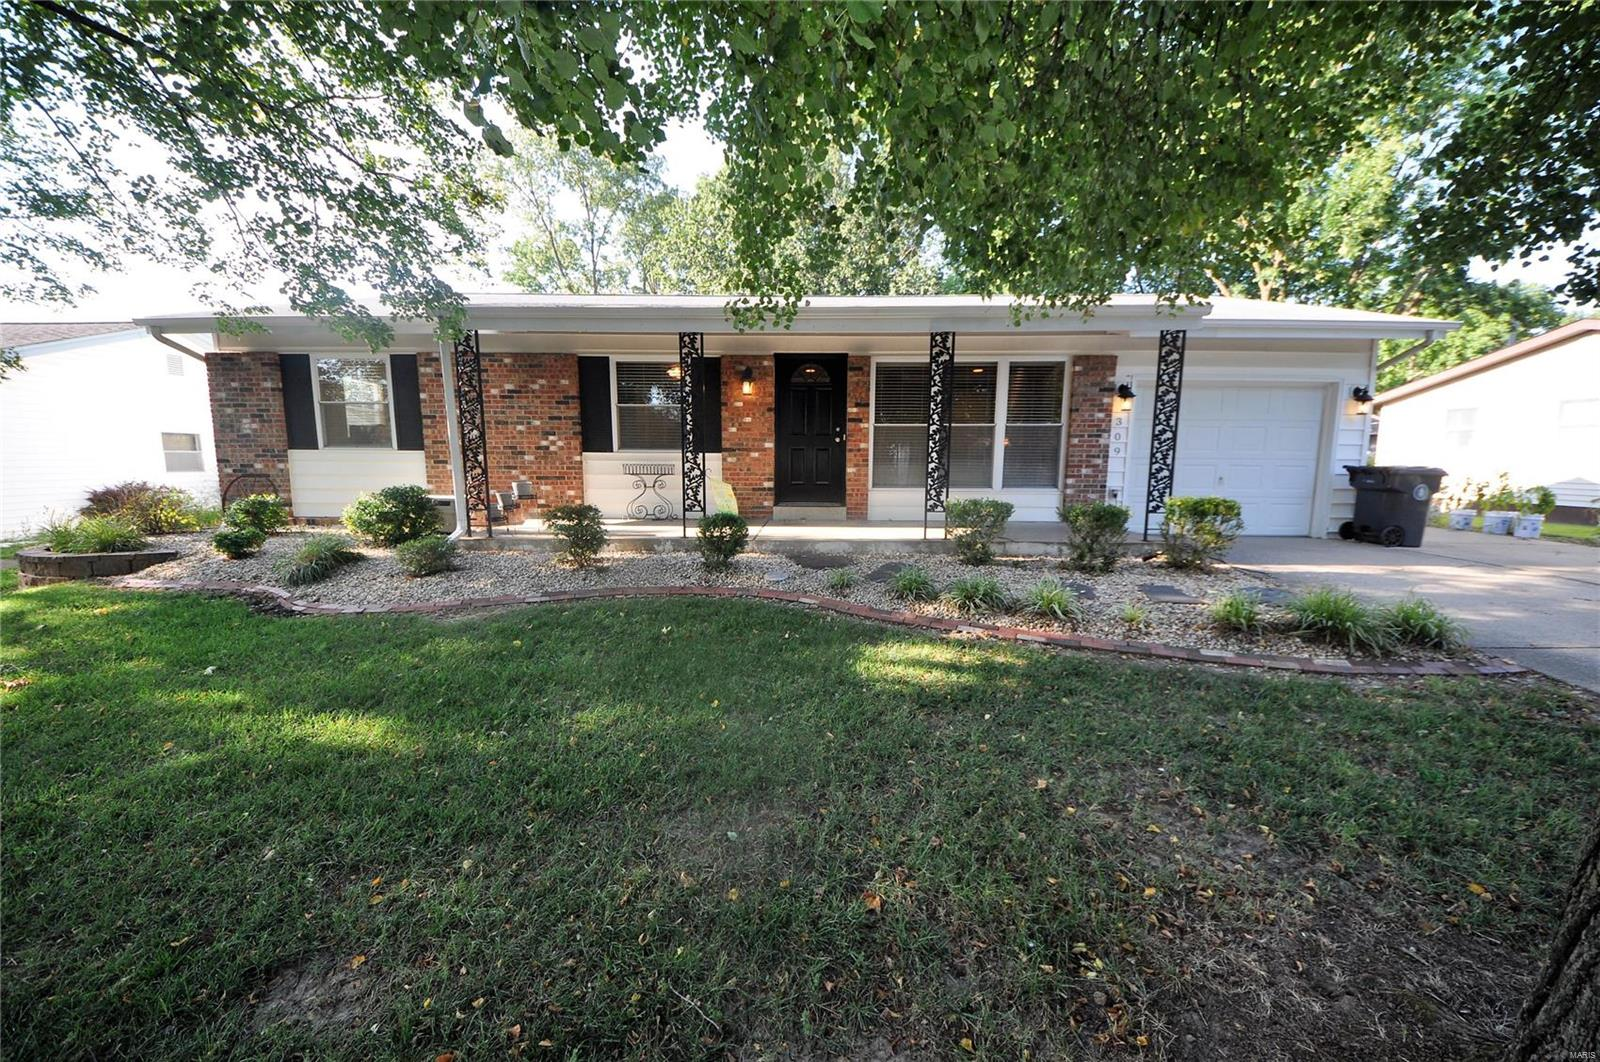 UPDATED 3 BDRM, 2 BTH ranch w/1500+ sq ft & large, level fenced in backyard in the heart of north O'Fallon. Updates include: luxury SS appliances (21) including refrigerator, fresh paint throughout ENTIRE home (21), bth fixtures (21), 2 sleeping areas added in lower level (20), HVAC & water heater (17). Exterior boasts brick front w/covered porch on nearly quarter acre lot w/oversized 1 car garage, patio overlooking fenced in backyard w/shed & firepit area. Interior starts w/spacious living rm w/built in entertainment area & wall to wall windows providing TONS of natural light. Updated kitchen w/custom cabs w/crown molding, wall of built ins, pantry, ALL new SS appliances including gas stove, breakfast bar & breakfast rm. Main fl owners suite w/wall to wall closet space & full bth w/walk in shower. 2 add'l bdrms & full bth on main. Partially finished LL includes rec/family area w/couch that STAYS & 2 add'l sleeping areas (shelving rack/closet stays as well!). SO much space! MUST SEE!